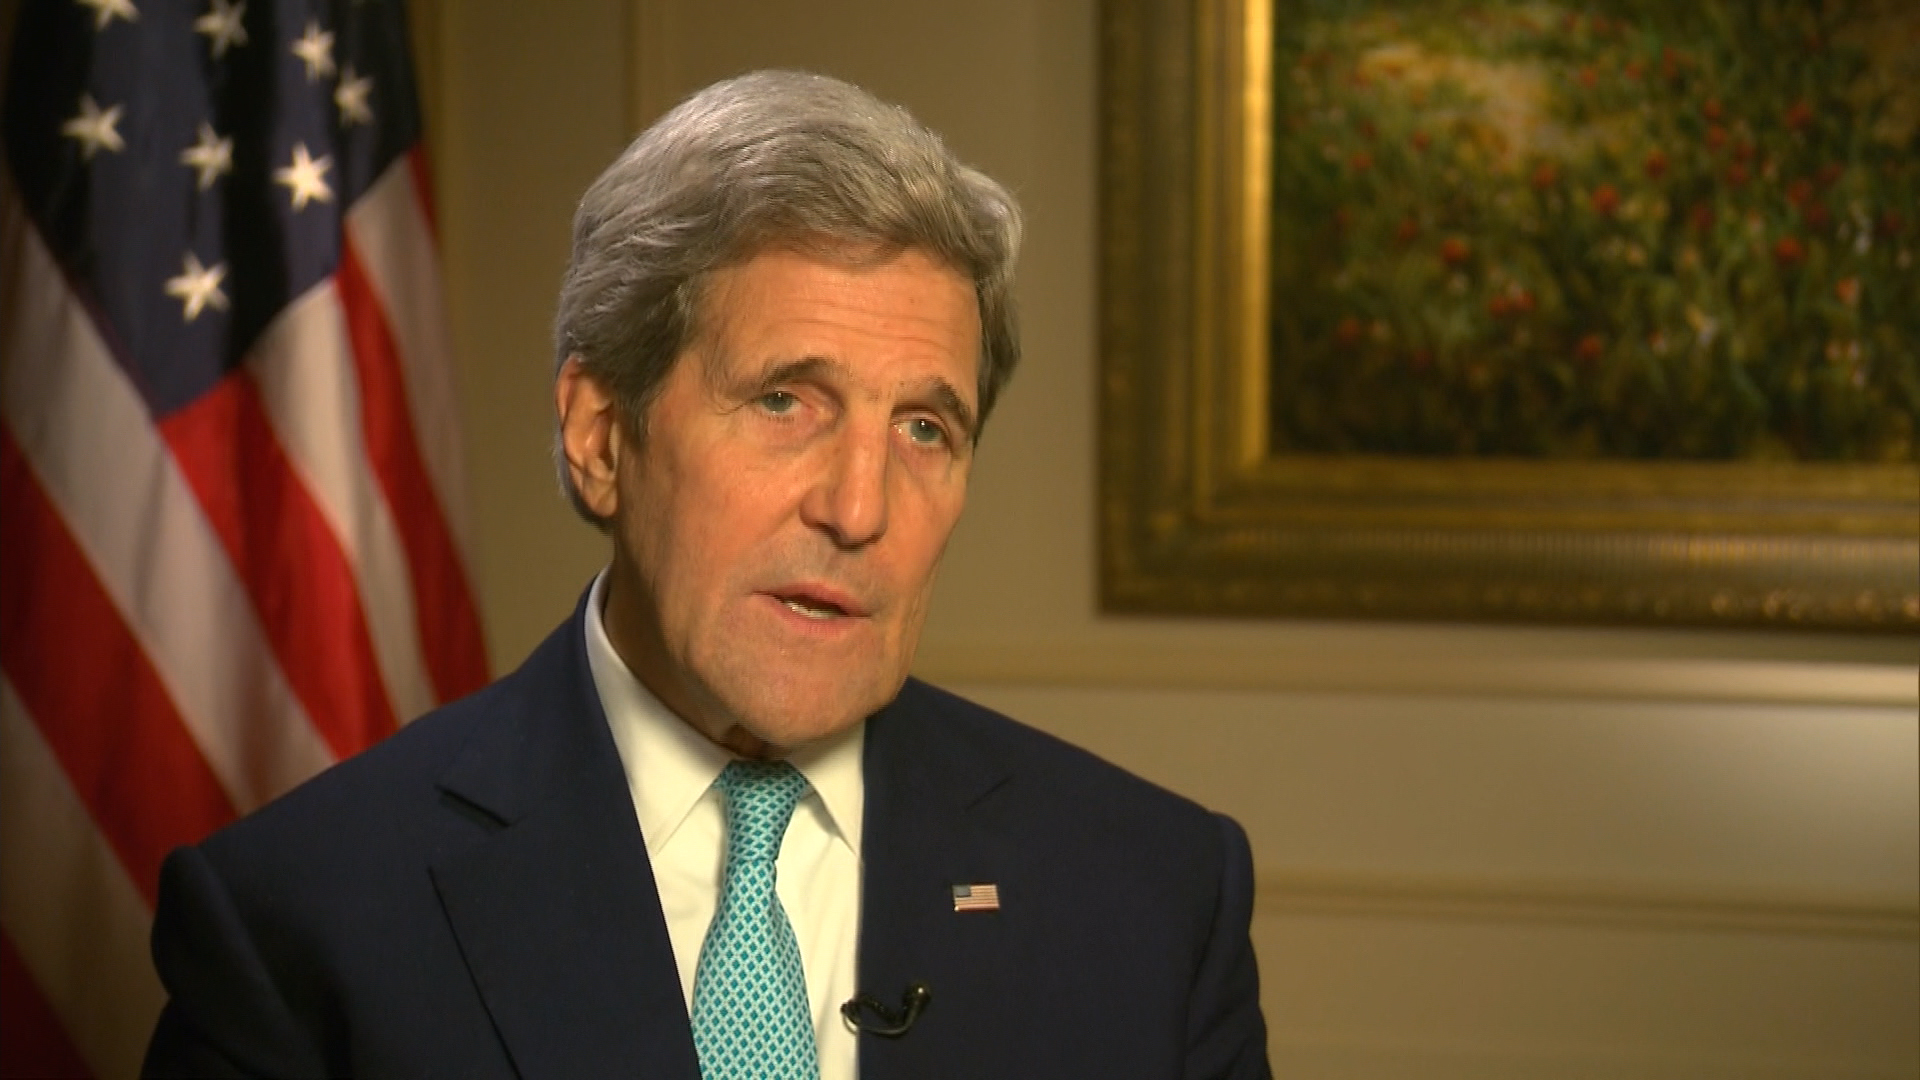 Kerry to Congress: 'Listen to the experts'